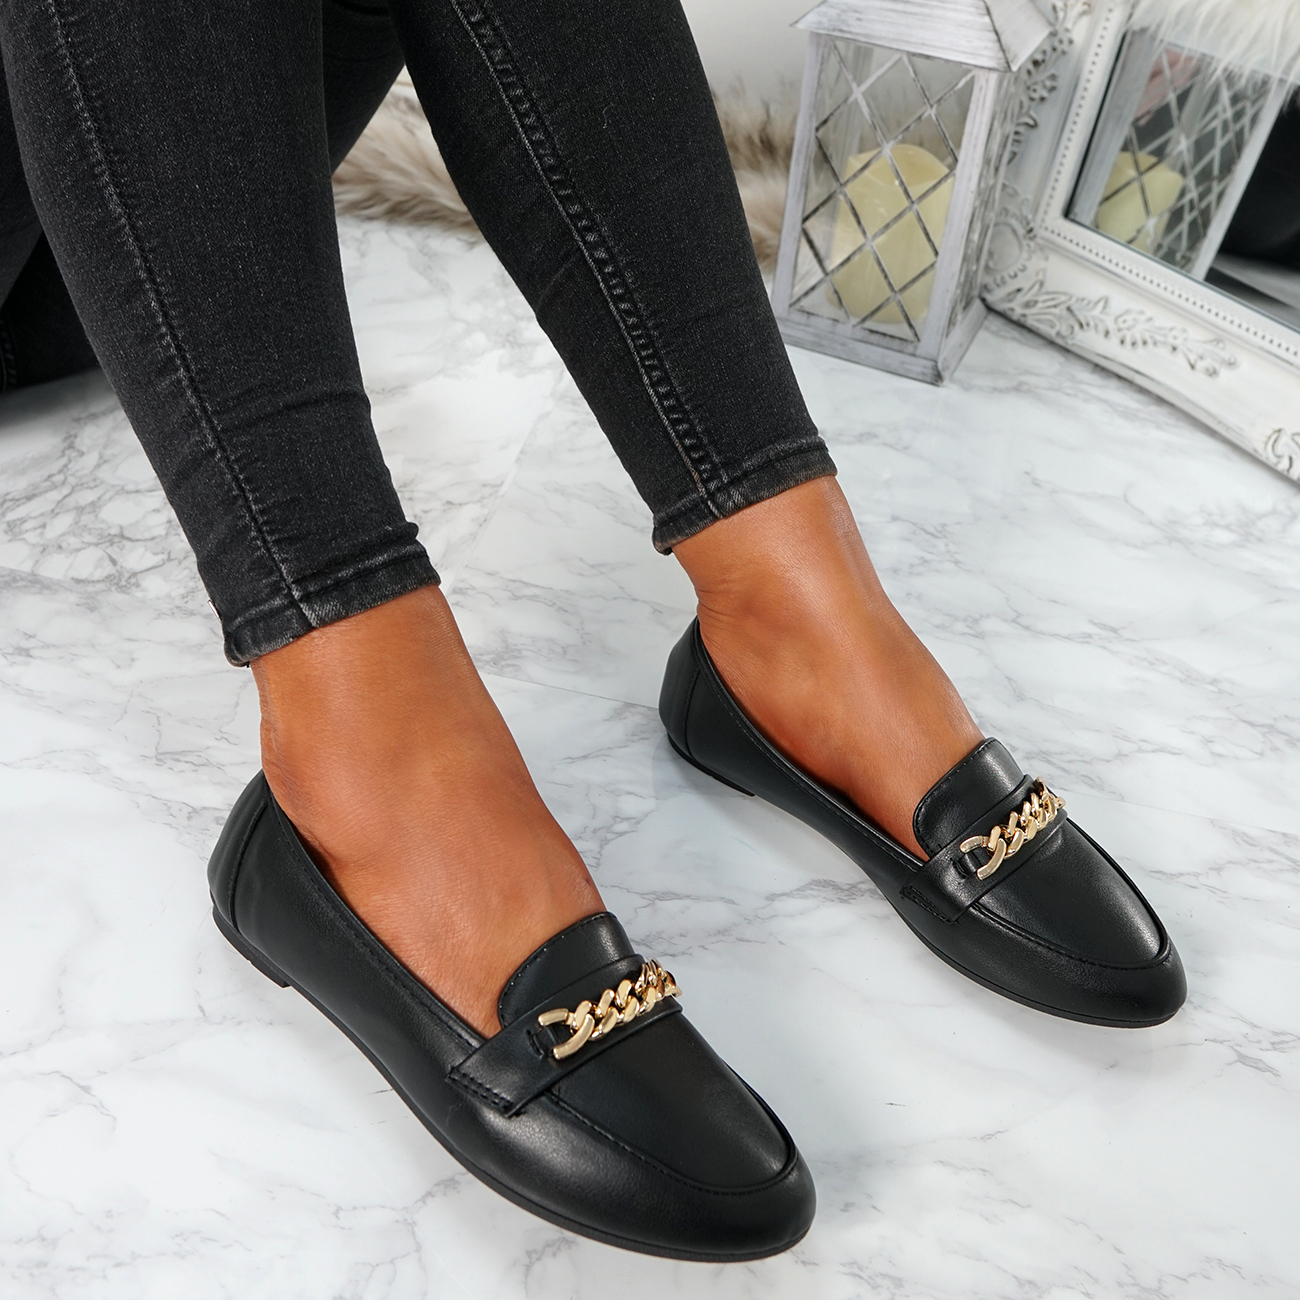 WOMENS-LADIES-CHAIN-SLIP-ON-BALLERINA-LOAFERS-BALLET-DOLLY-PUMPS-SHOES-SIZE thumbnail 13